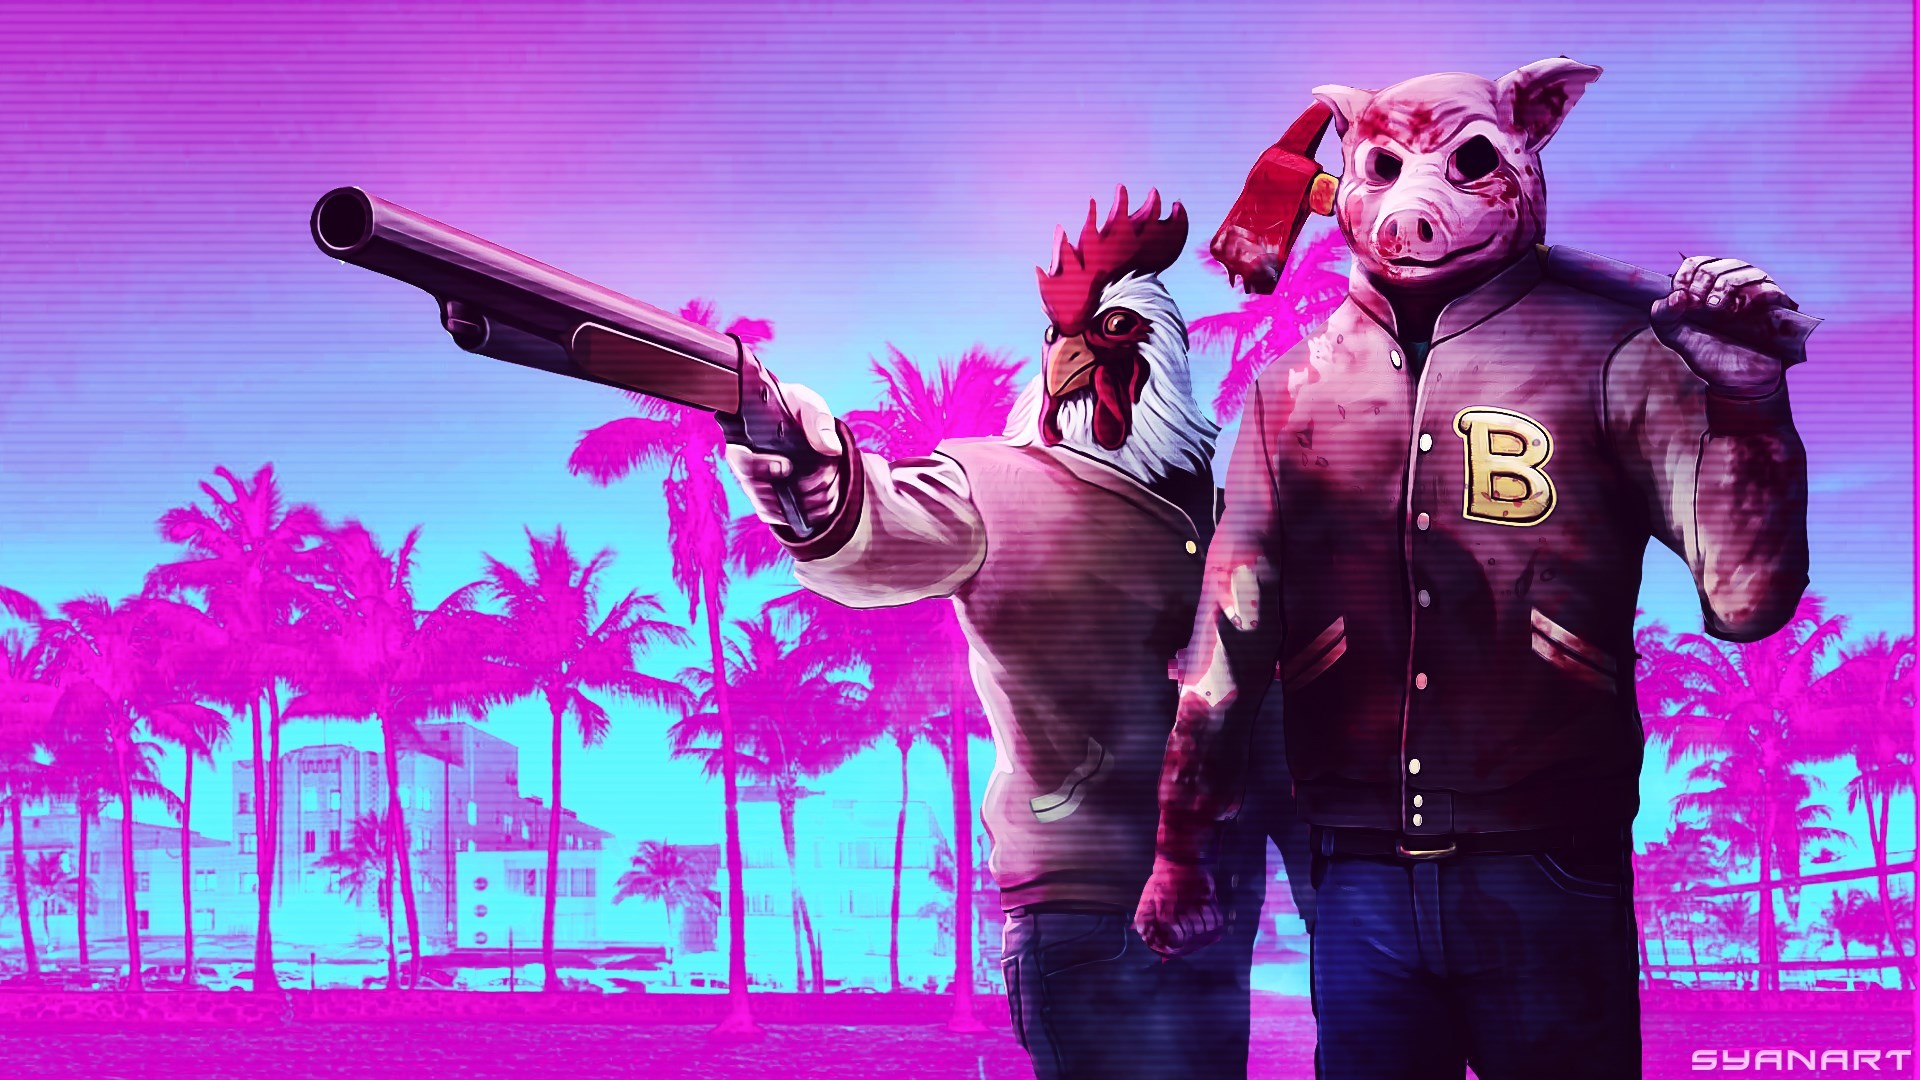 #1968701, Backgrounds In High Quality – hotline miami pic